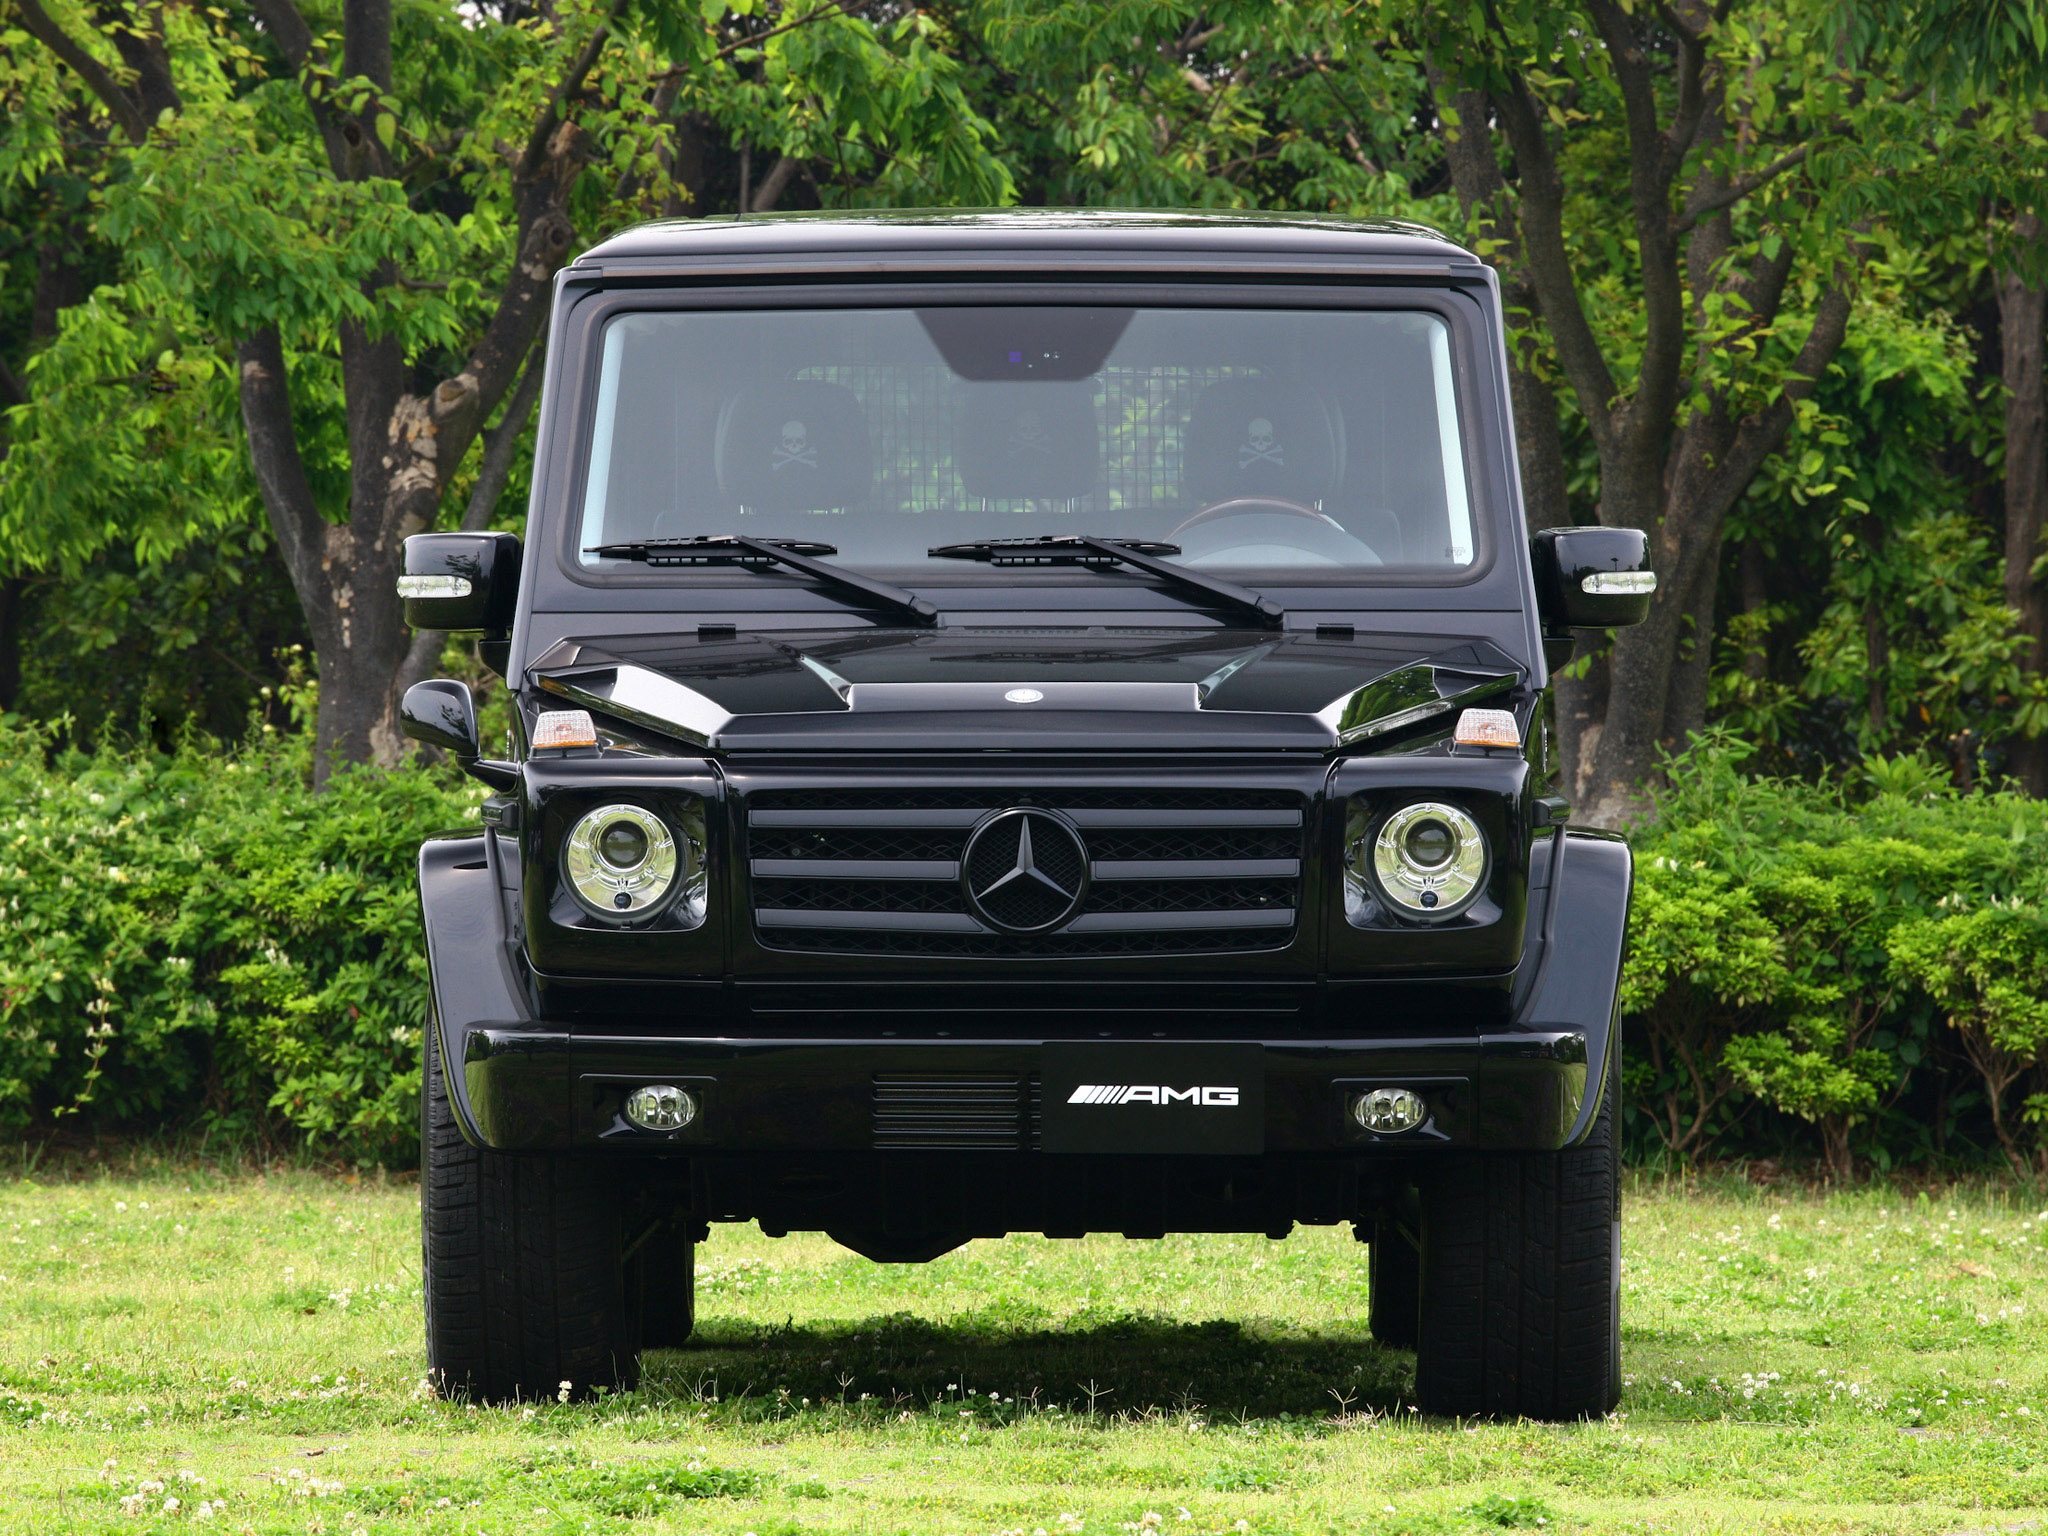 2018 Mercedes Benz G55 AMG Kompressor photo - 3